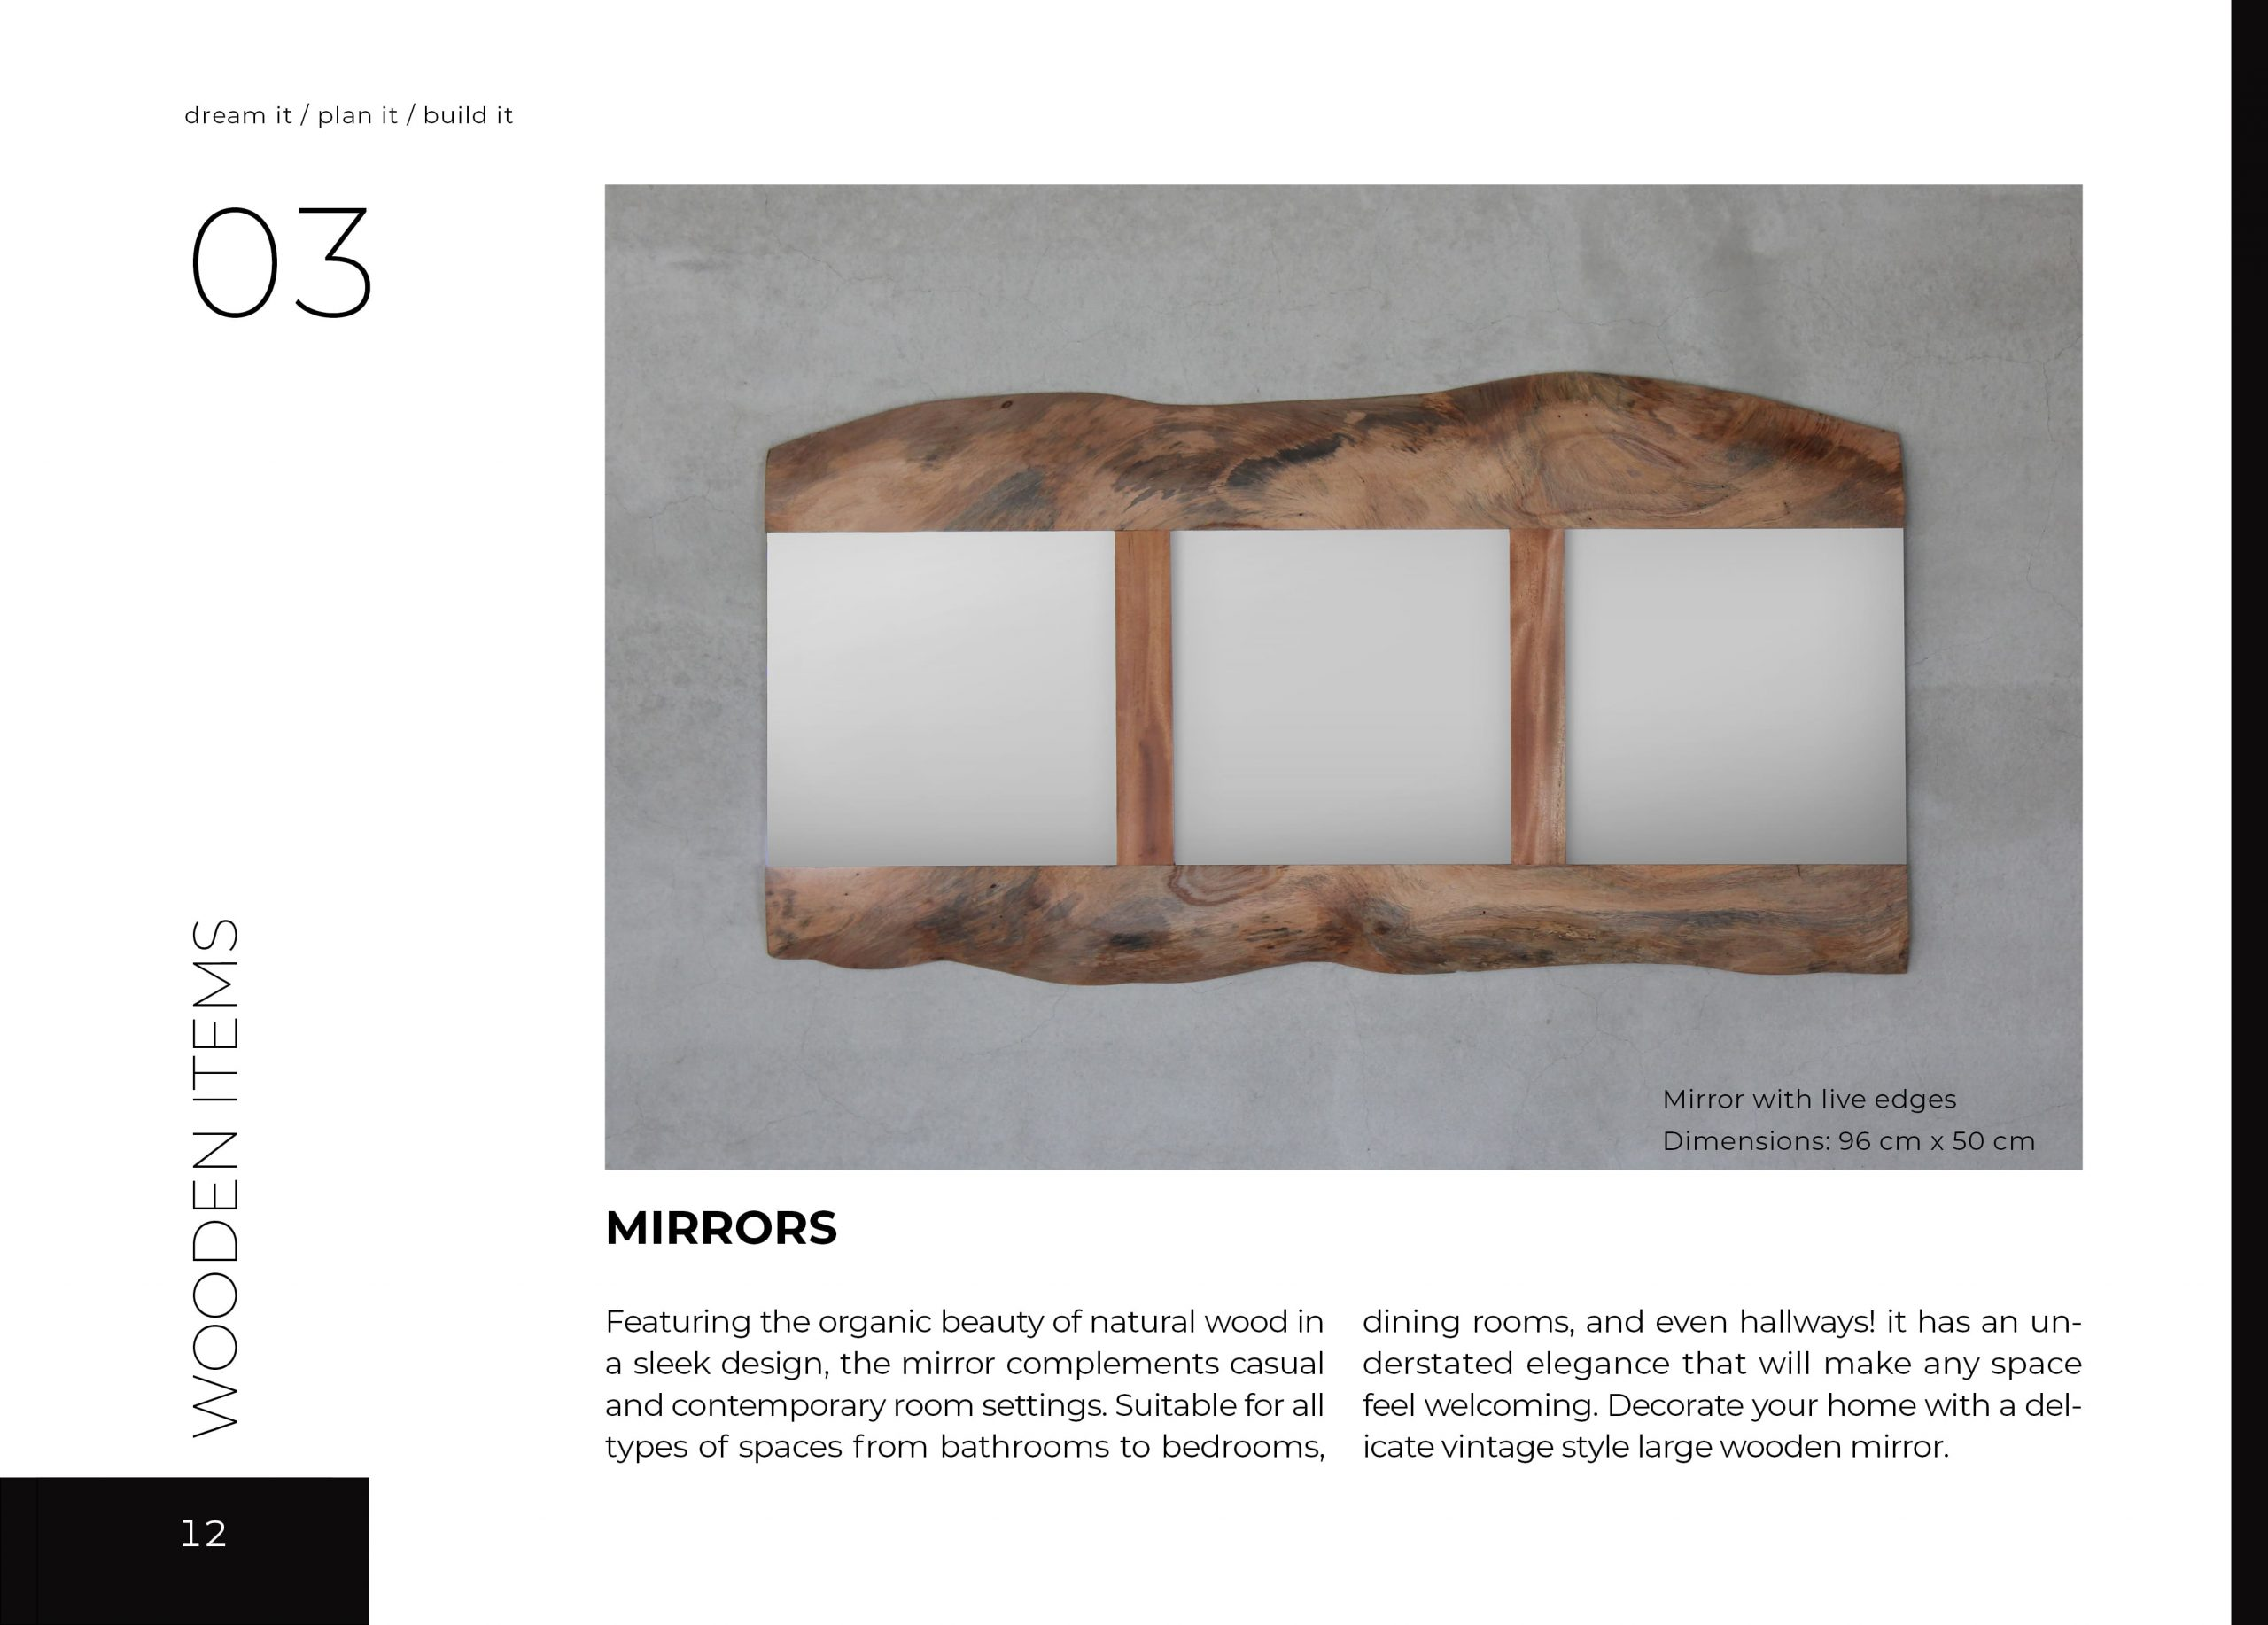 FabsFurniture Taiwan Portfolio - 2021 - wooden mirrors with live edge